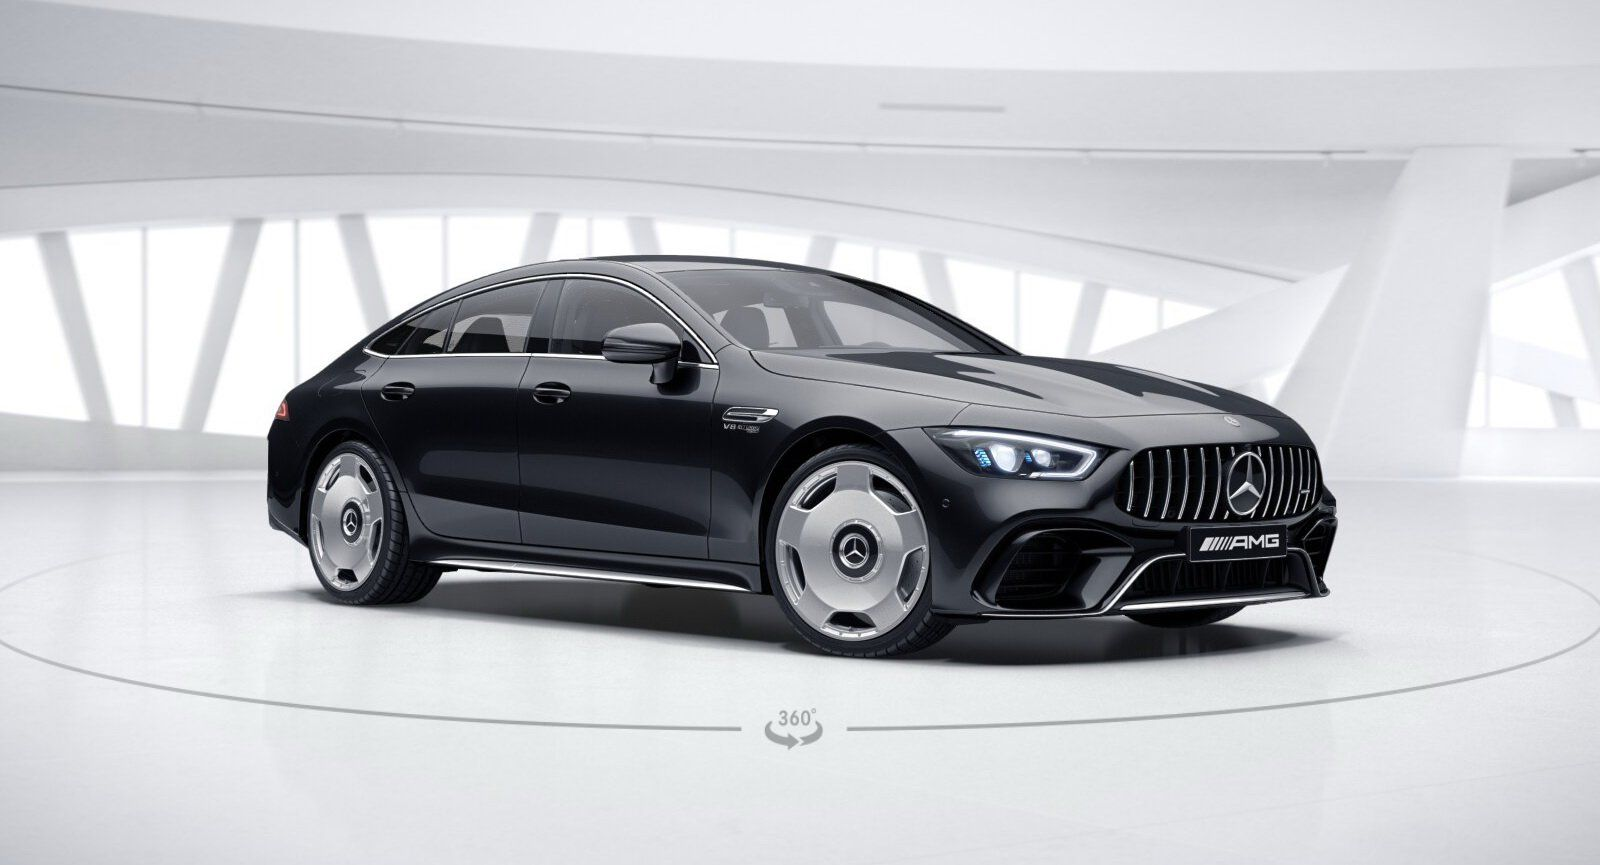 Mercedes Amg Gt 4 Door Coupe Poses On New Monoblock Wheels And The Want Is Real Carscoops Mercedes Amg Amg Mercedes